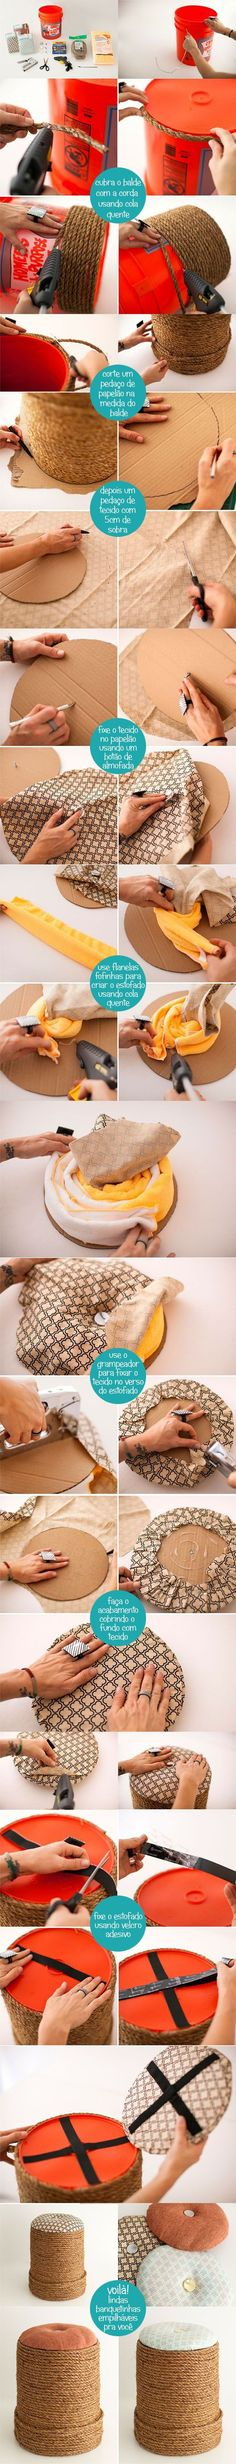 de galletas y moka DIY – Passo a Passo: Baldes de plástico viram banquetas. Fun Diy Crafts, Home Crafts, Diy Home Decor, Arts And Crafts, Diy Projects To Try, Craft Projects, Craft Ideas, Fun Ideas, Ideas Para